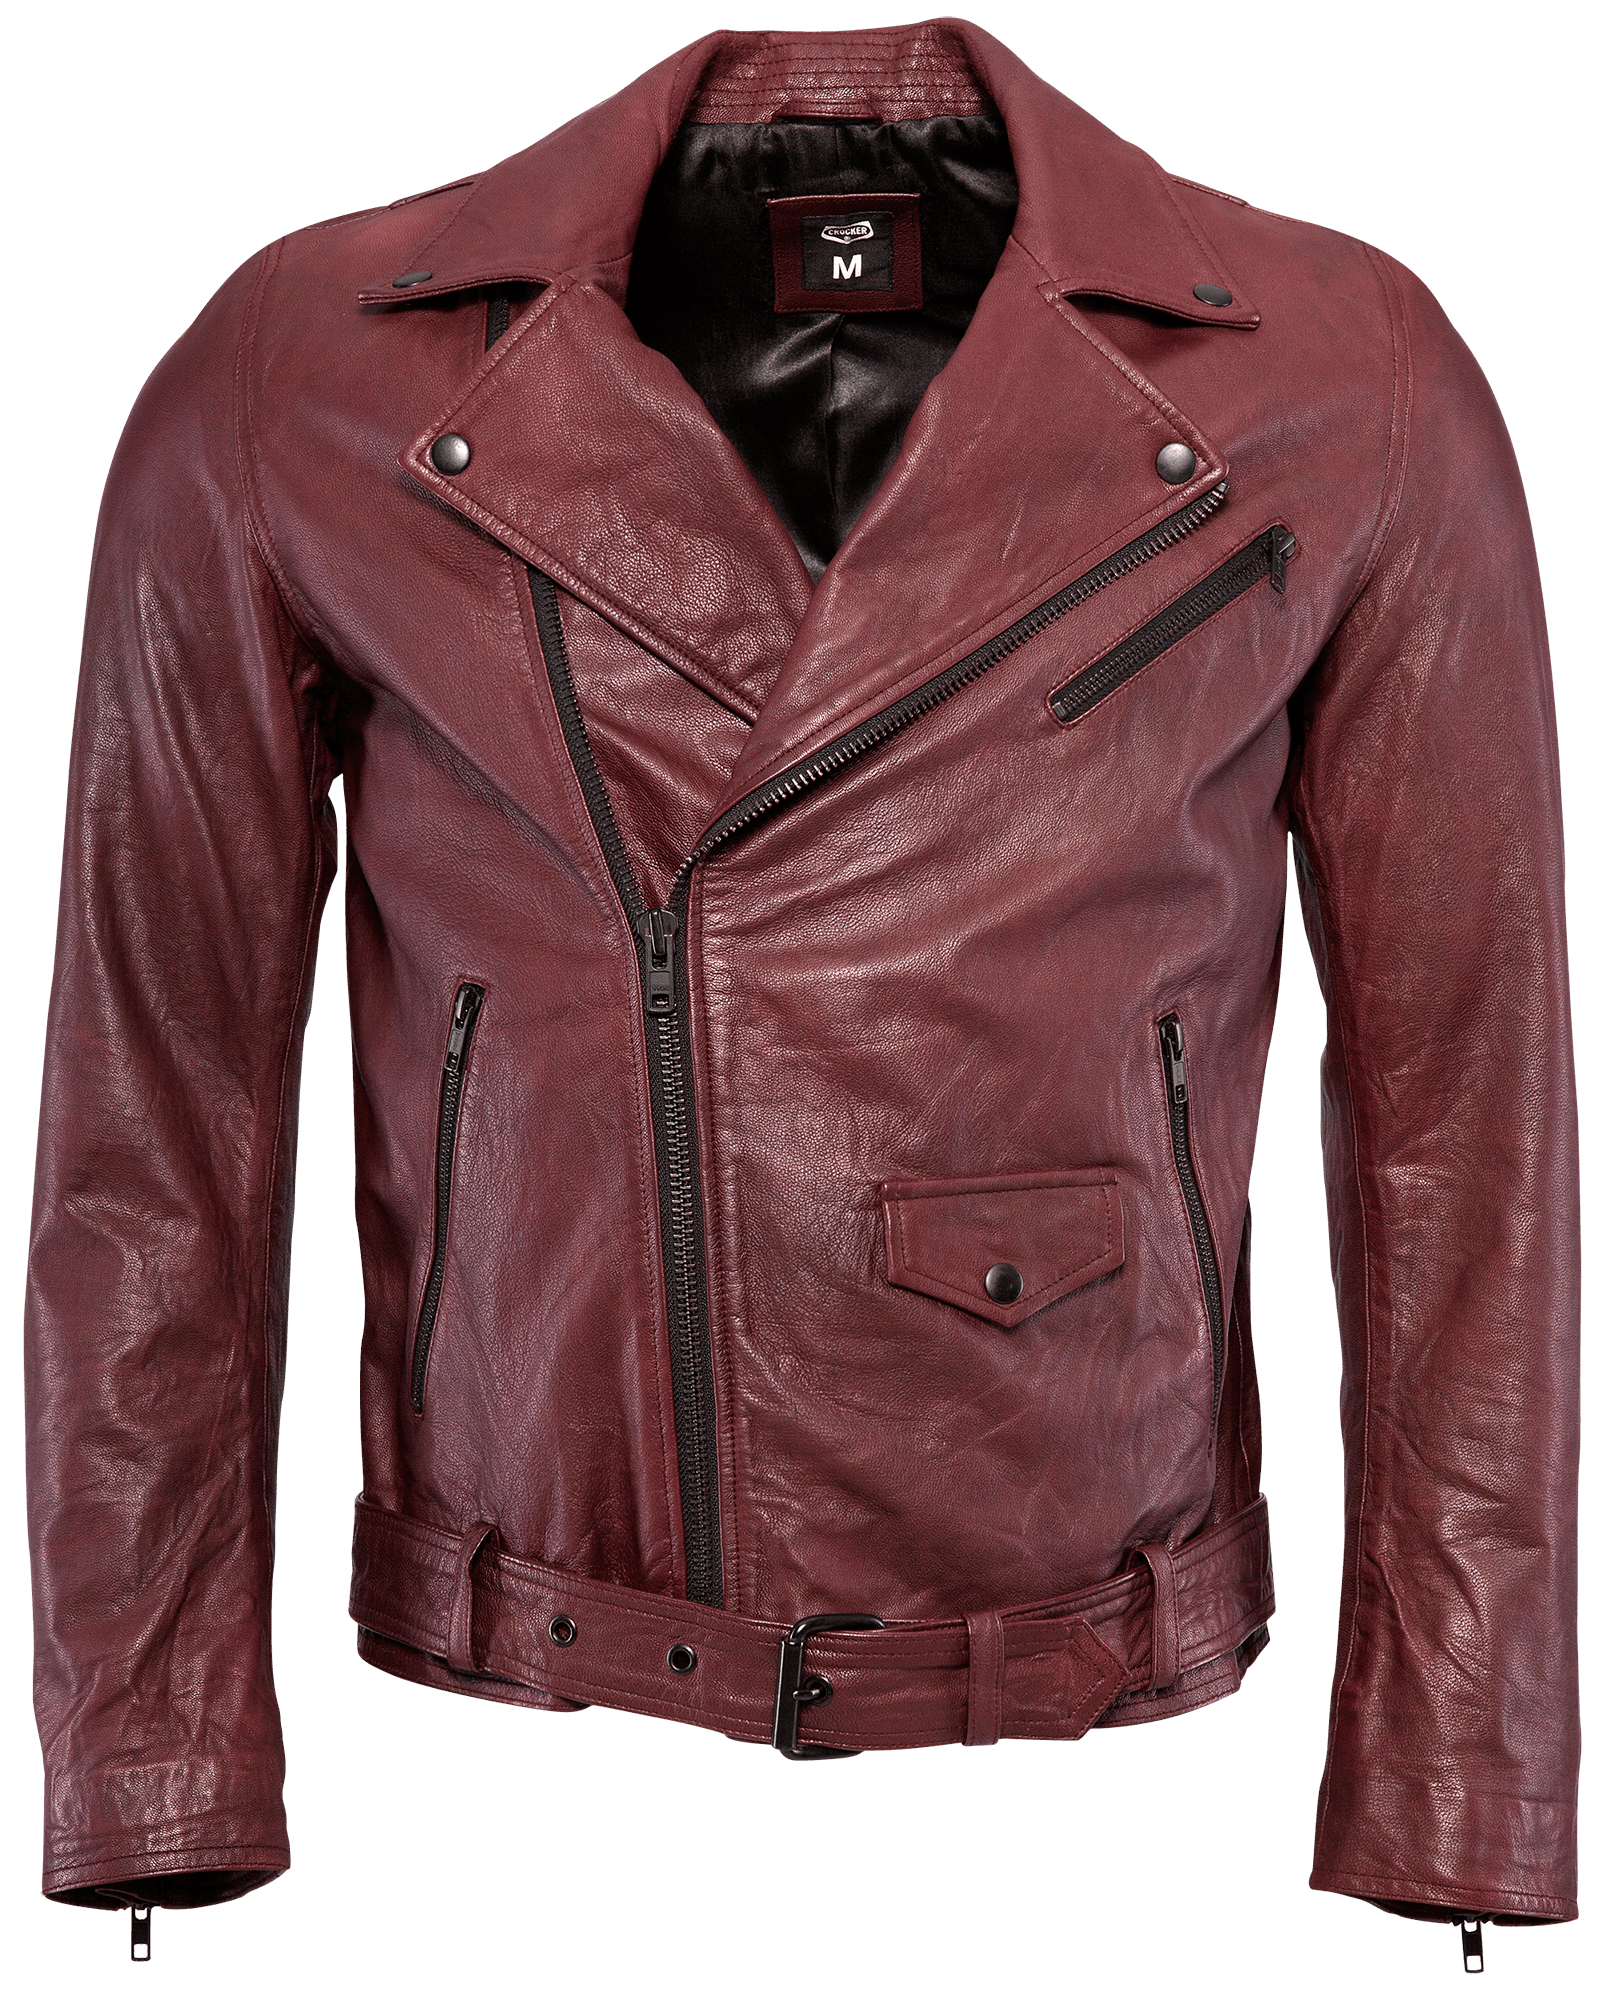 Leather Jacket Png Image PNG Image